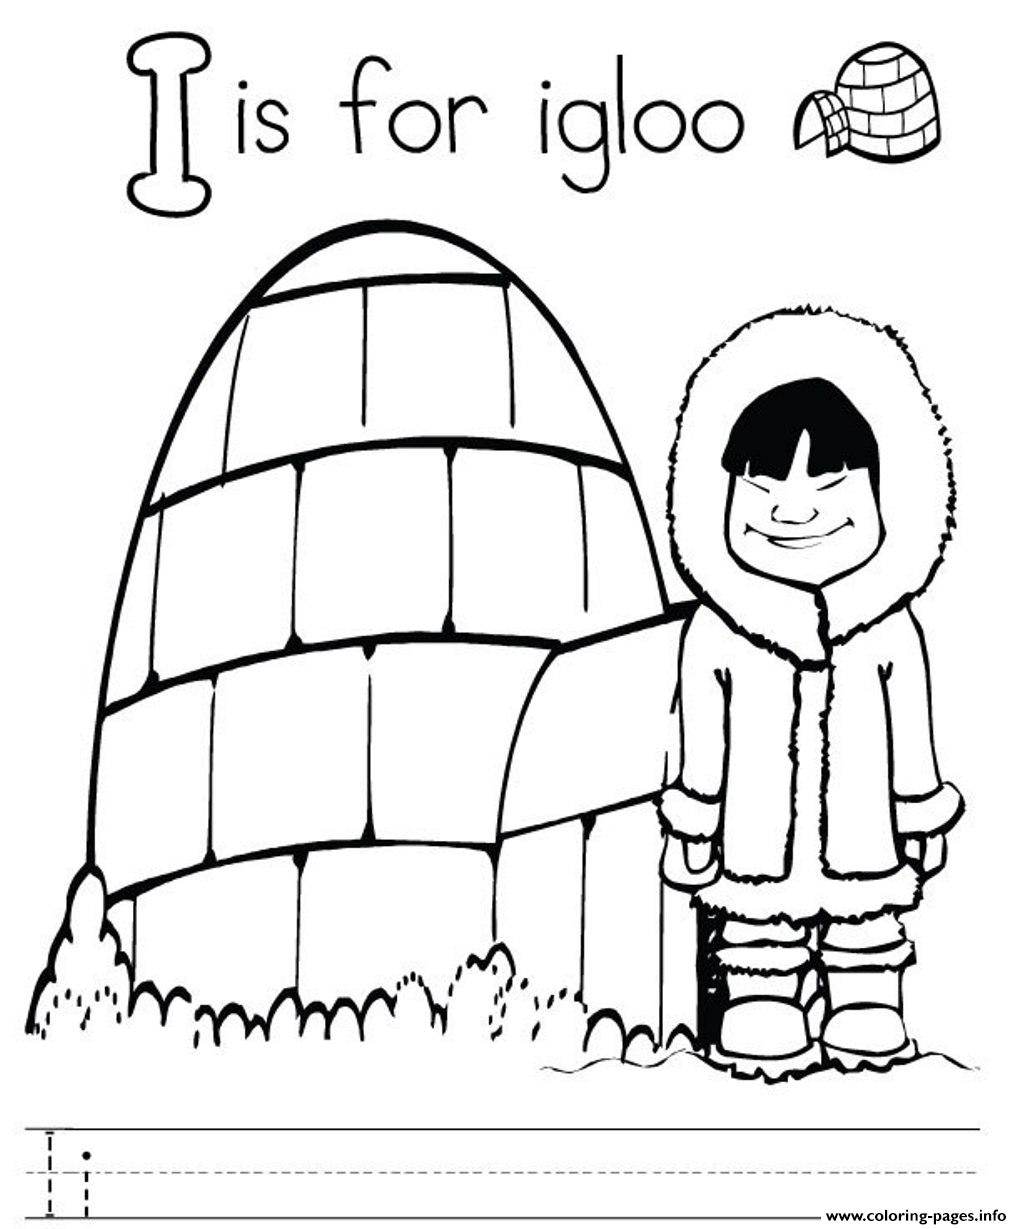 free printable igloo coloring pages - photo#21